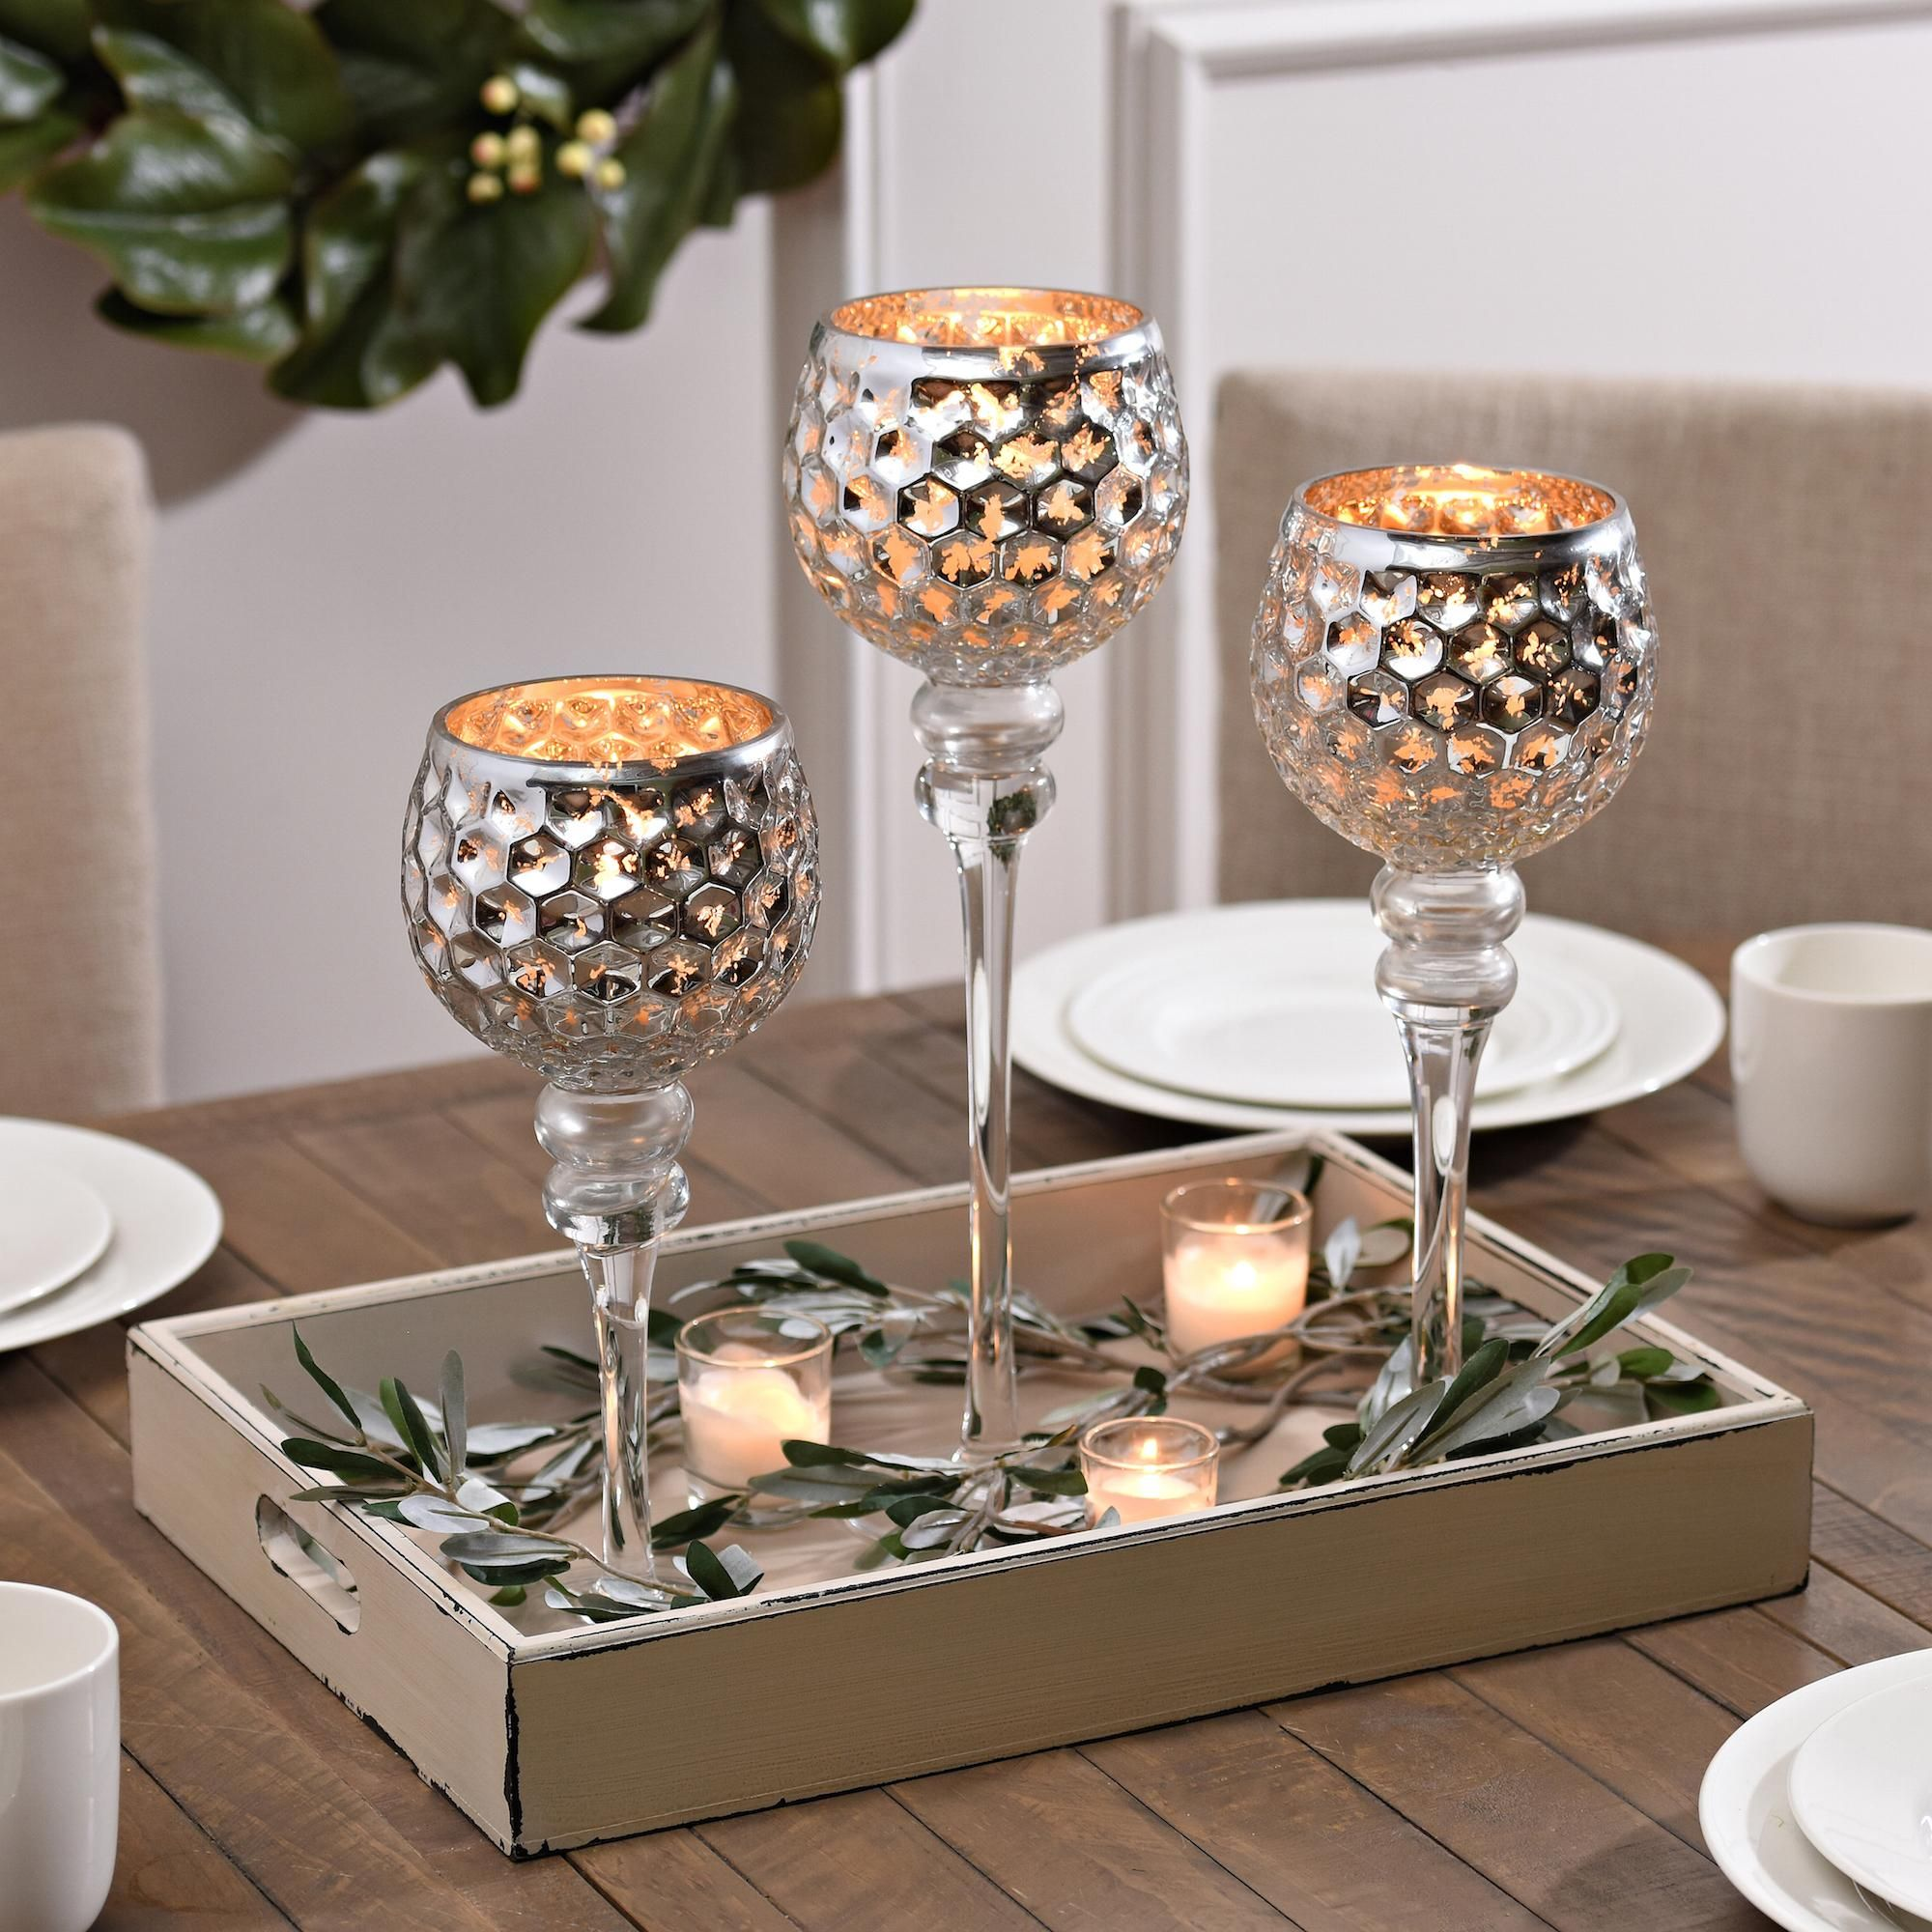 Dining table candle centerpieces - Kirkland S Set Of Silver Honeycomb Charisma Candle Holders Are Beautiful As Centerpieces Decorate Your Dining